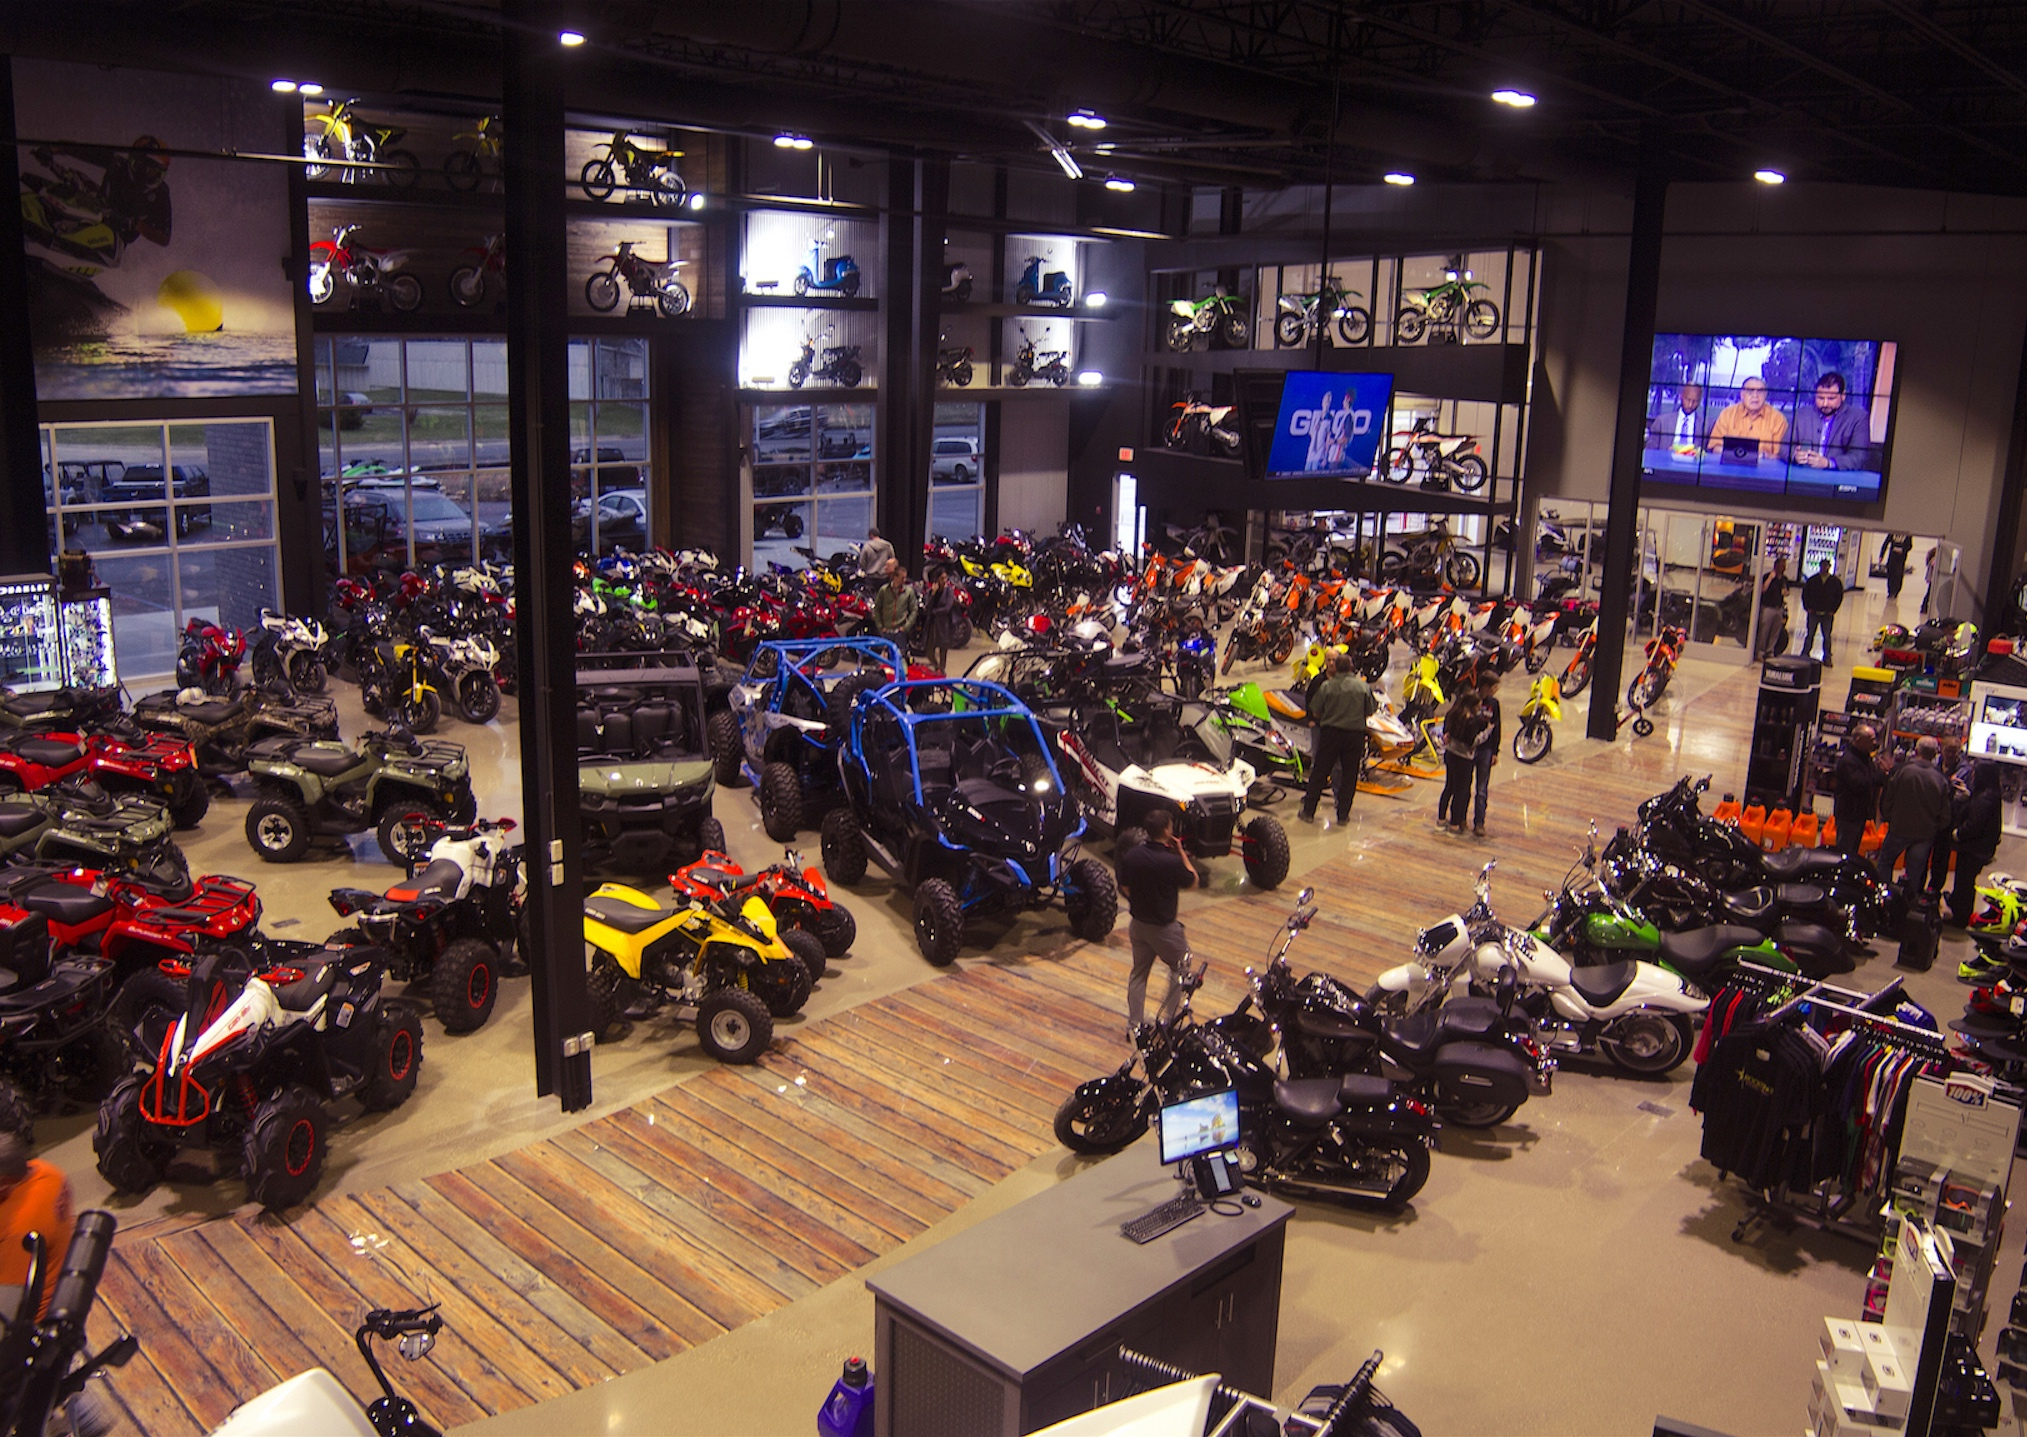 Kalamazoo-based Aaron Zeigler Opens Highly Anticipated 50-Acre Powersports Dealership & Entertainment Facility